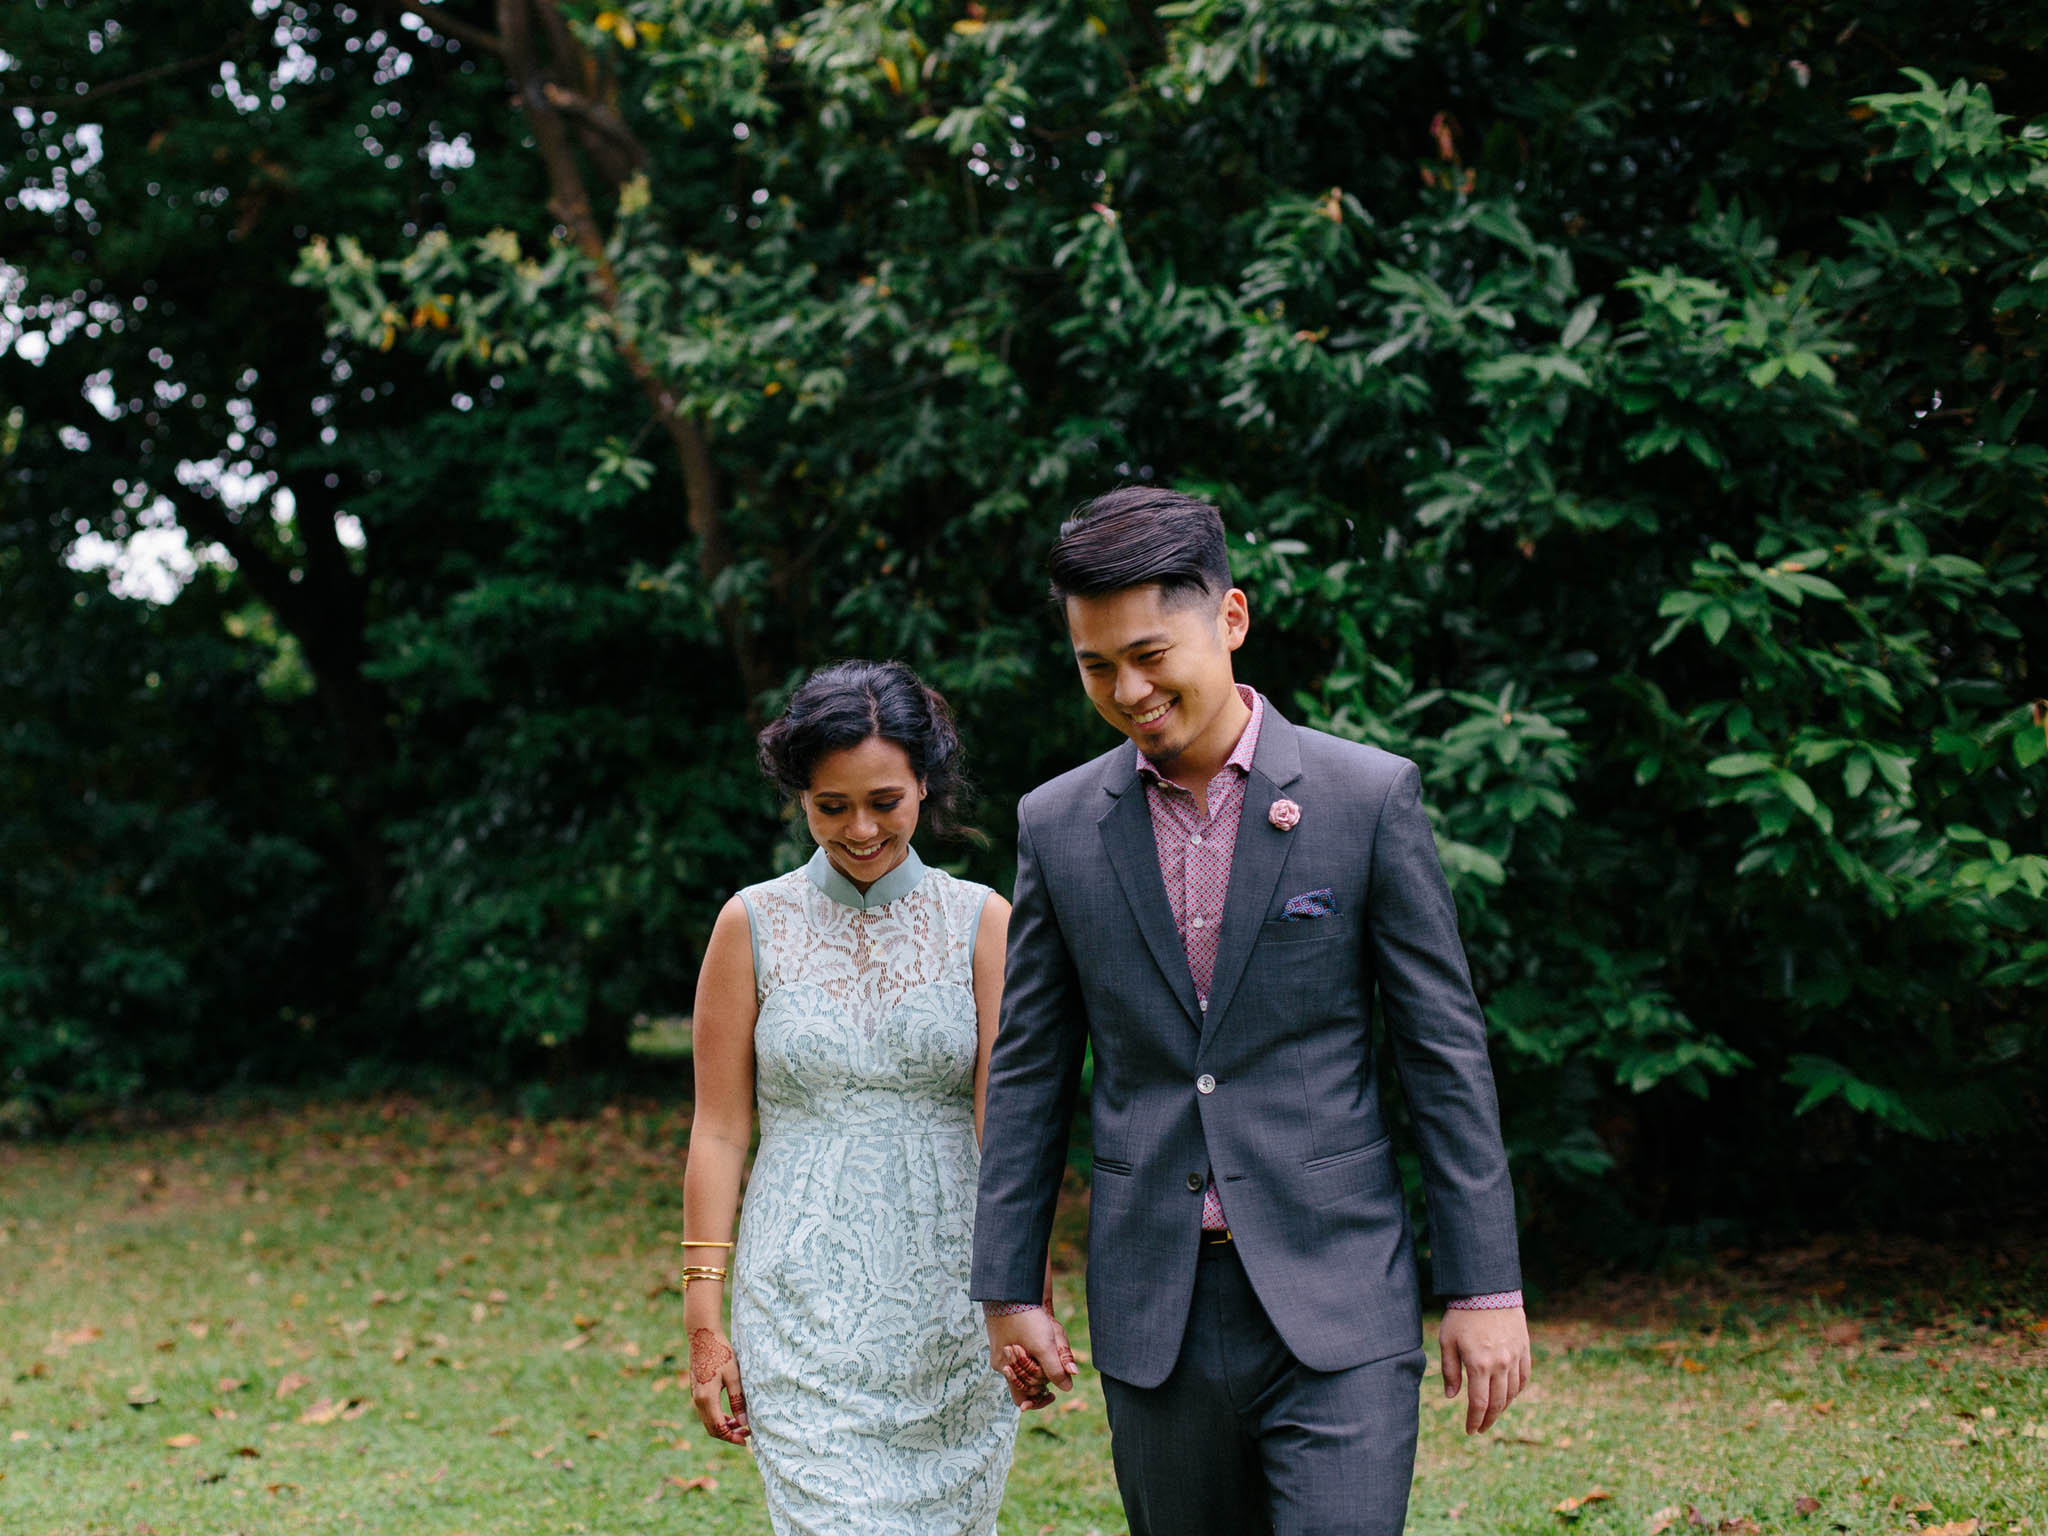 singapore-wedding-photographer-wedding-hafiana-teck-kuan-038.jpg